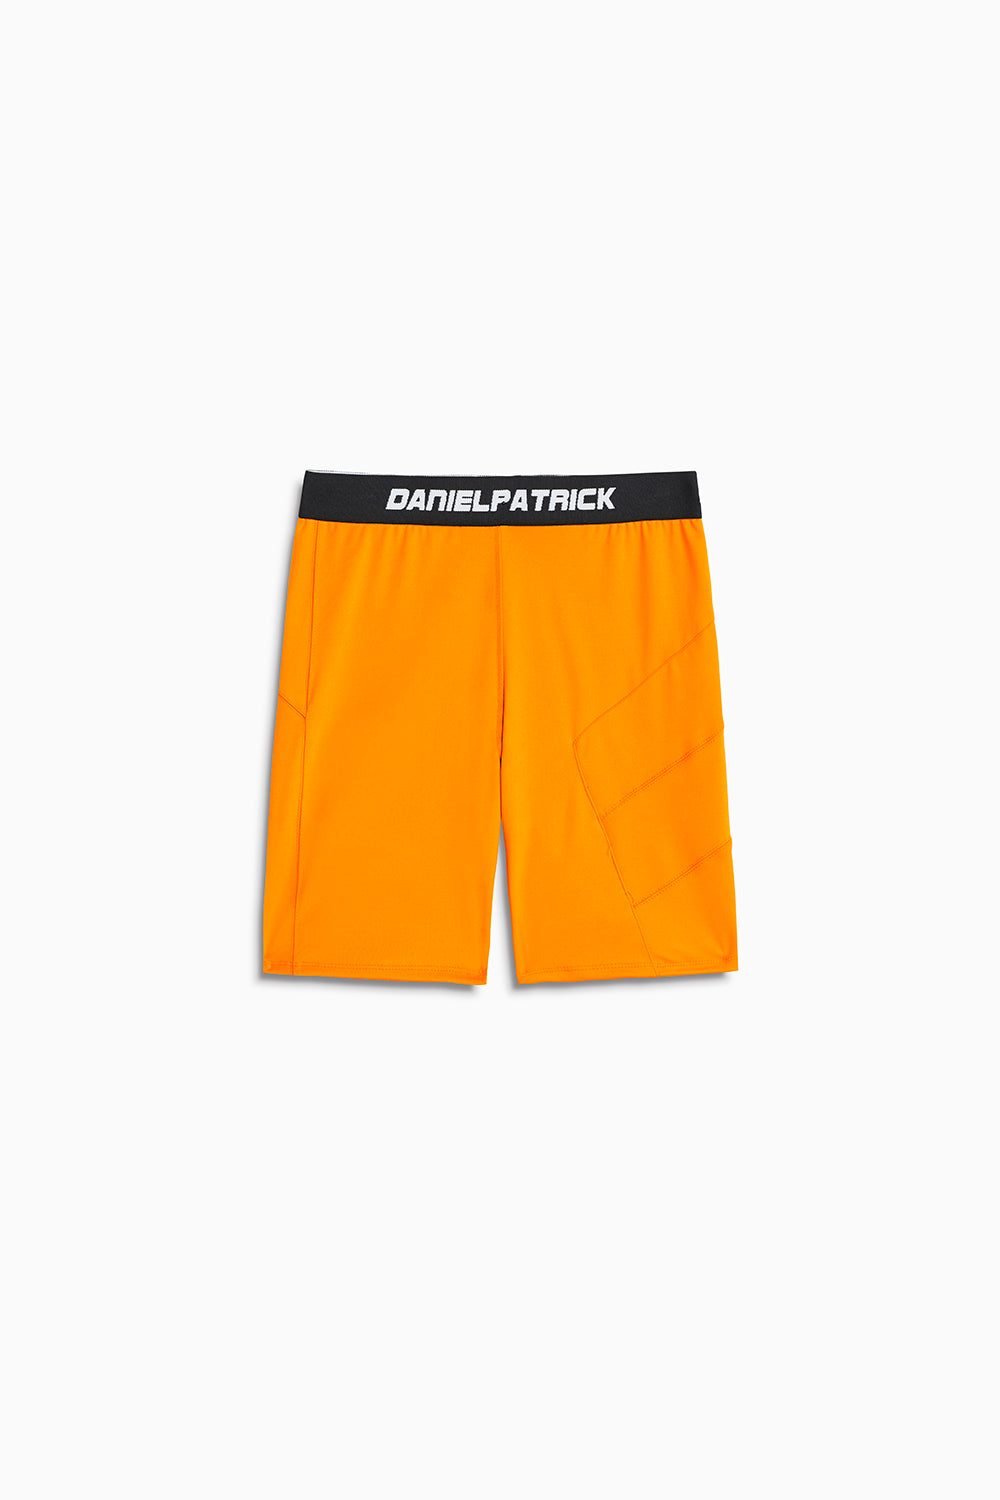 LA bike shorts in neon orange by daniel patrick